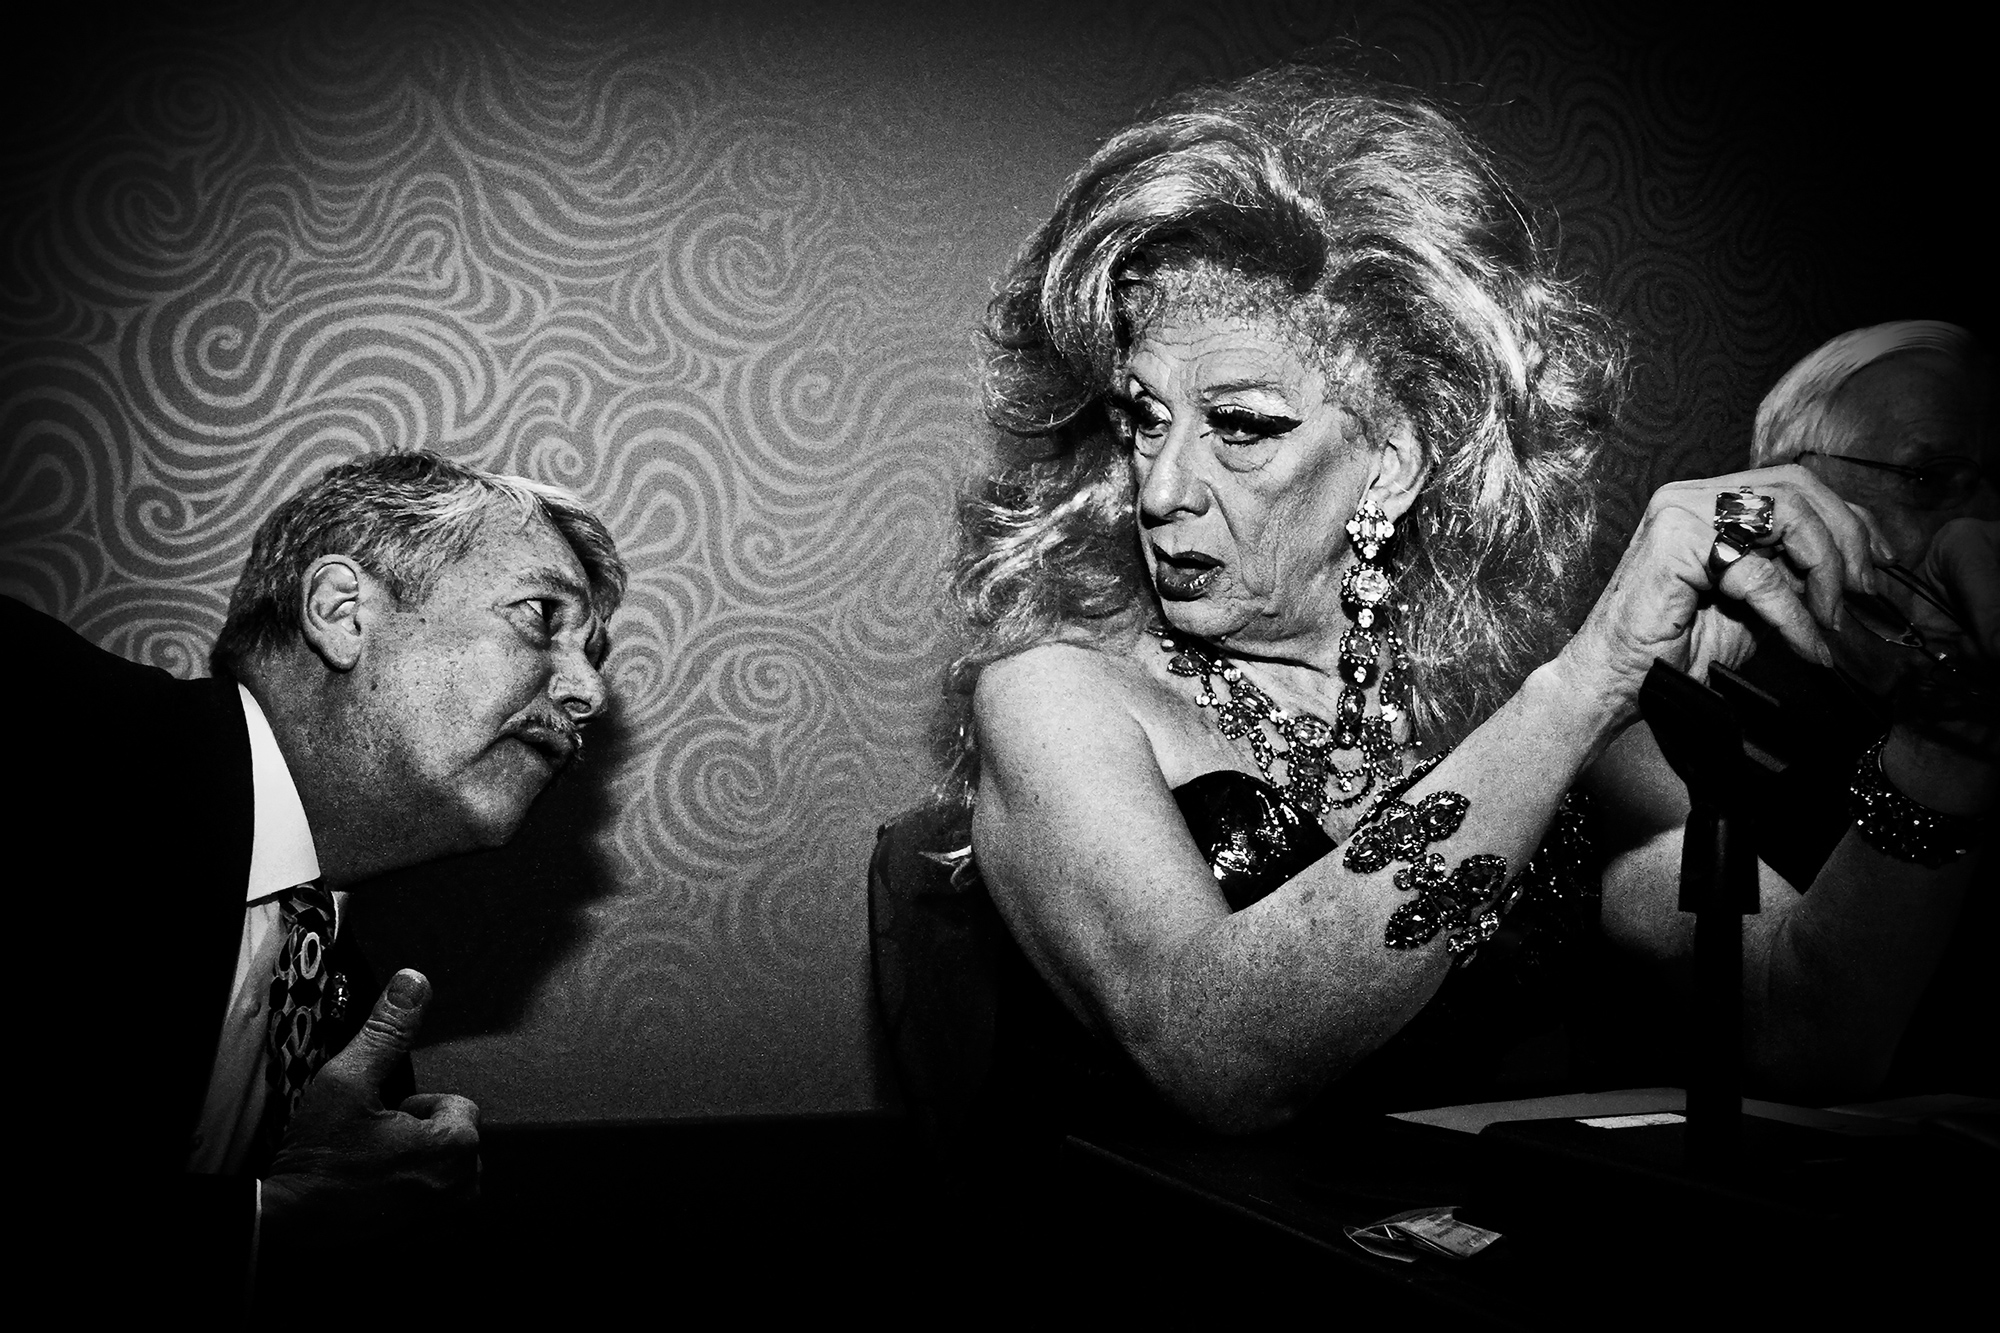 Jack-e Edwards gives Mike Dumoulin a bewildered look at The Imperial Sovereign Court of Seattle's Coronation, an annual drag celebration, at the Renaissance Ballroom on Feb. 19, 2011, in Seattle.